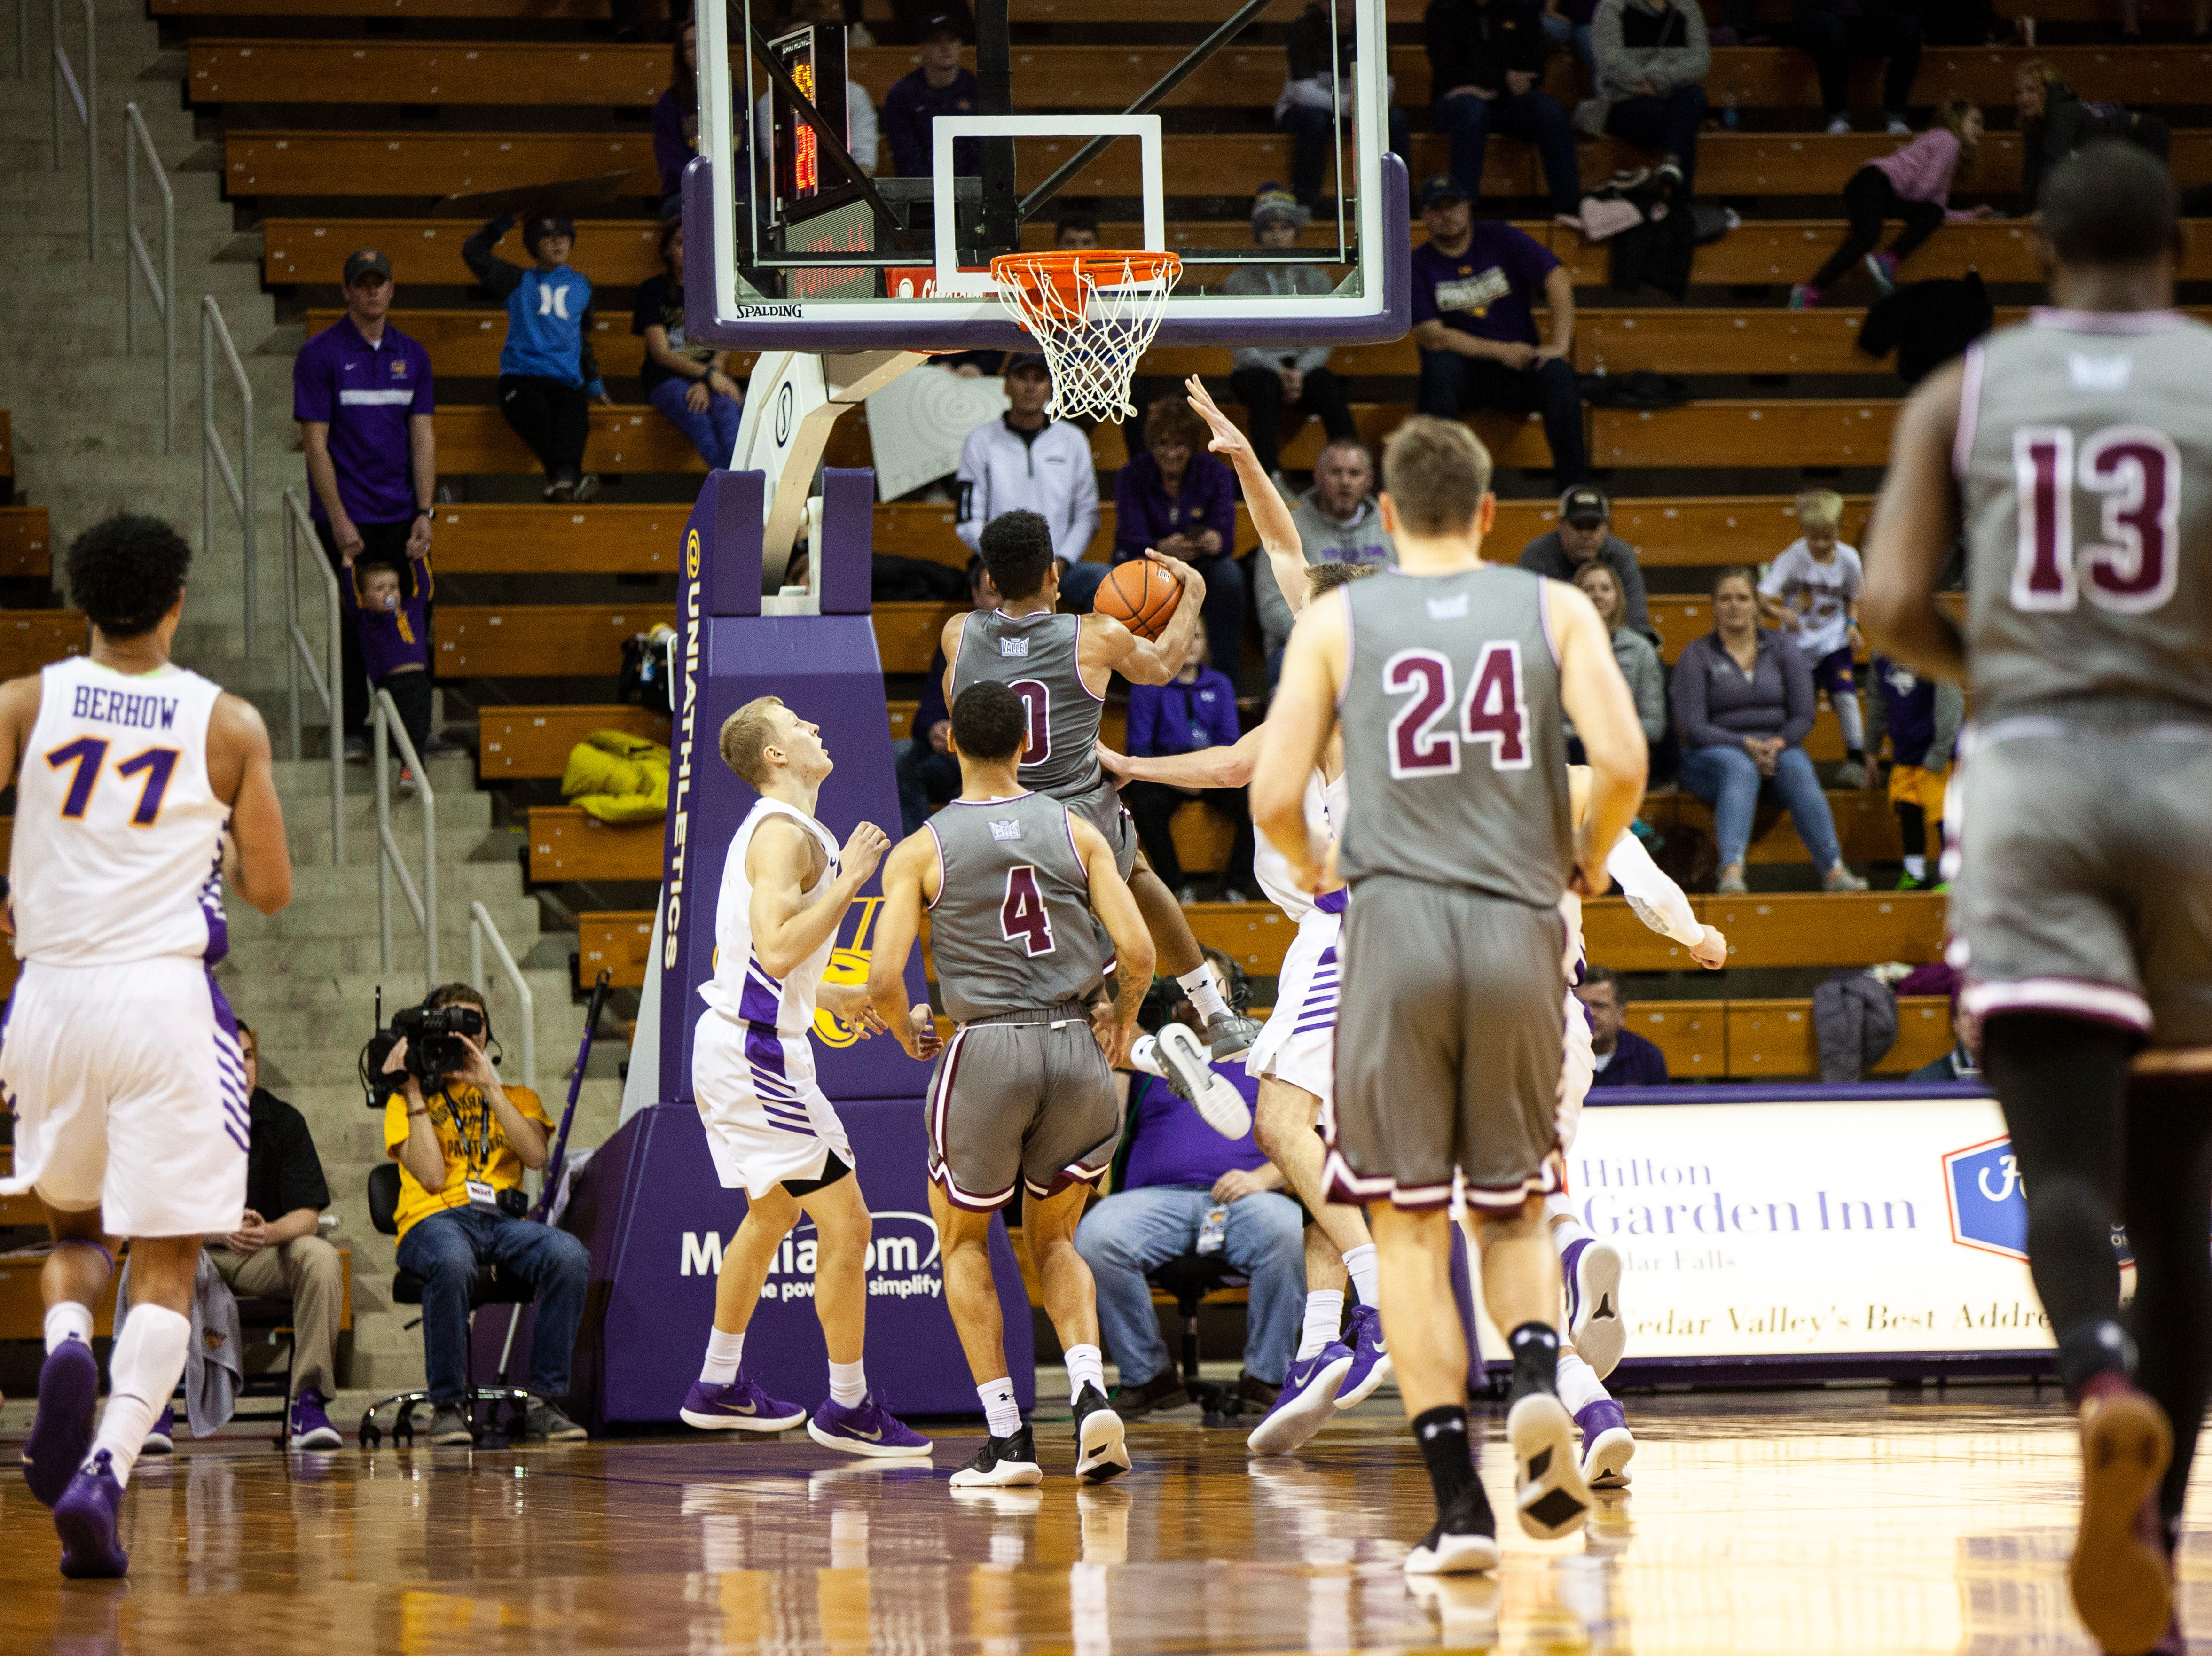 Southern Illinois guard Aaron Cook (10) makes a layup during a NCAA Missouri Valley Conference men's basketball game on Saturday, Jan. 5, 2019, at the McLeod Center in Cedar Falls, Iowa.